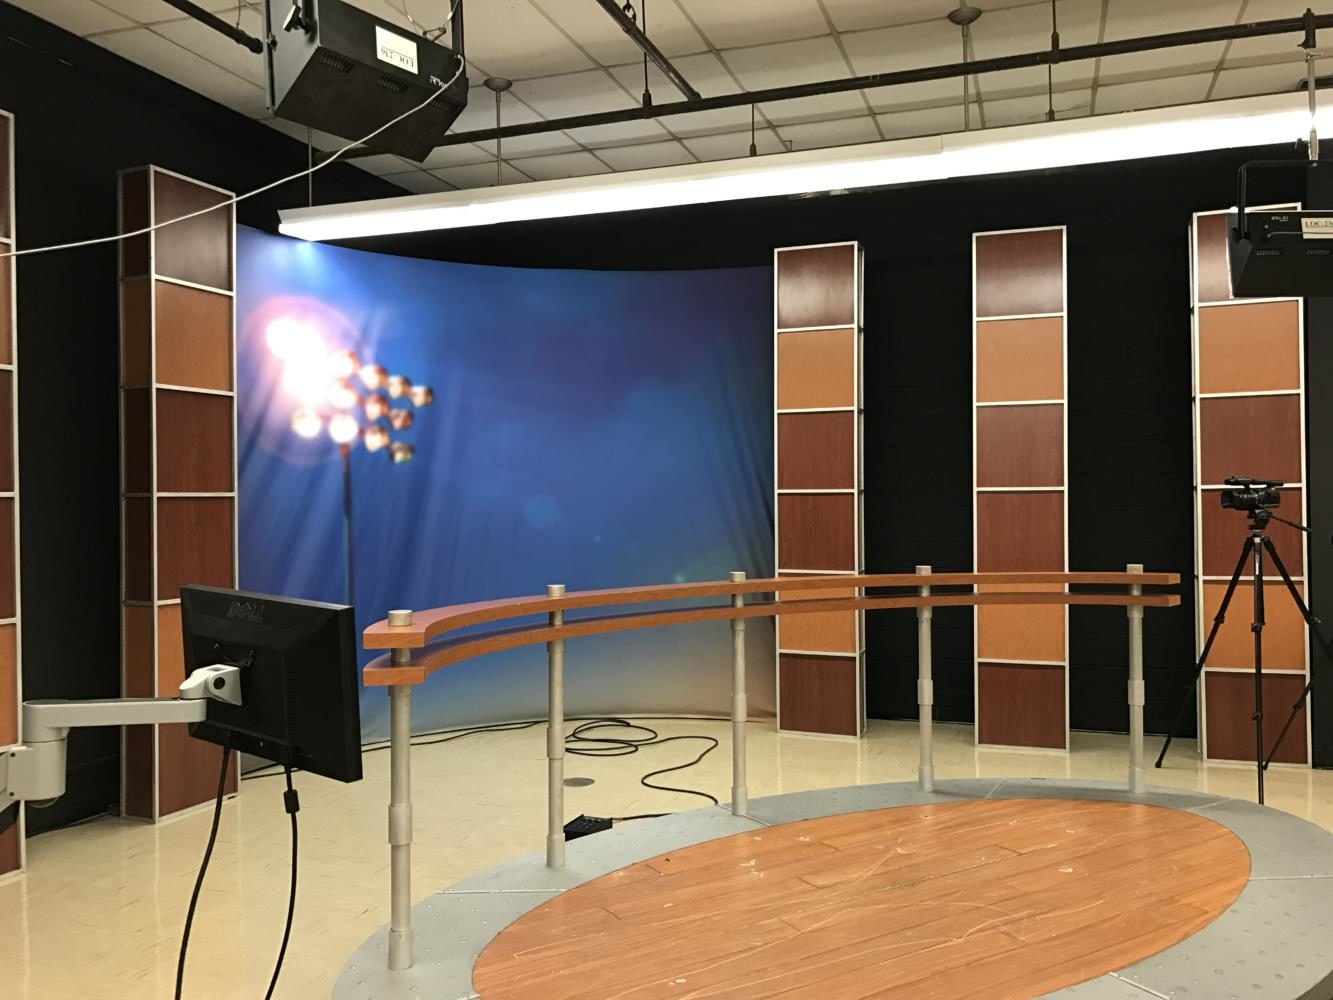 Our+TV+Studio+gets+a+face+lift.++Check+it+out+this+Thursday+during+morning+announcements+in+homeroom.